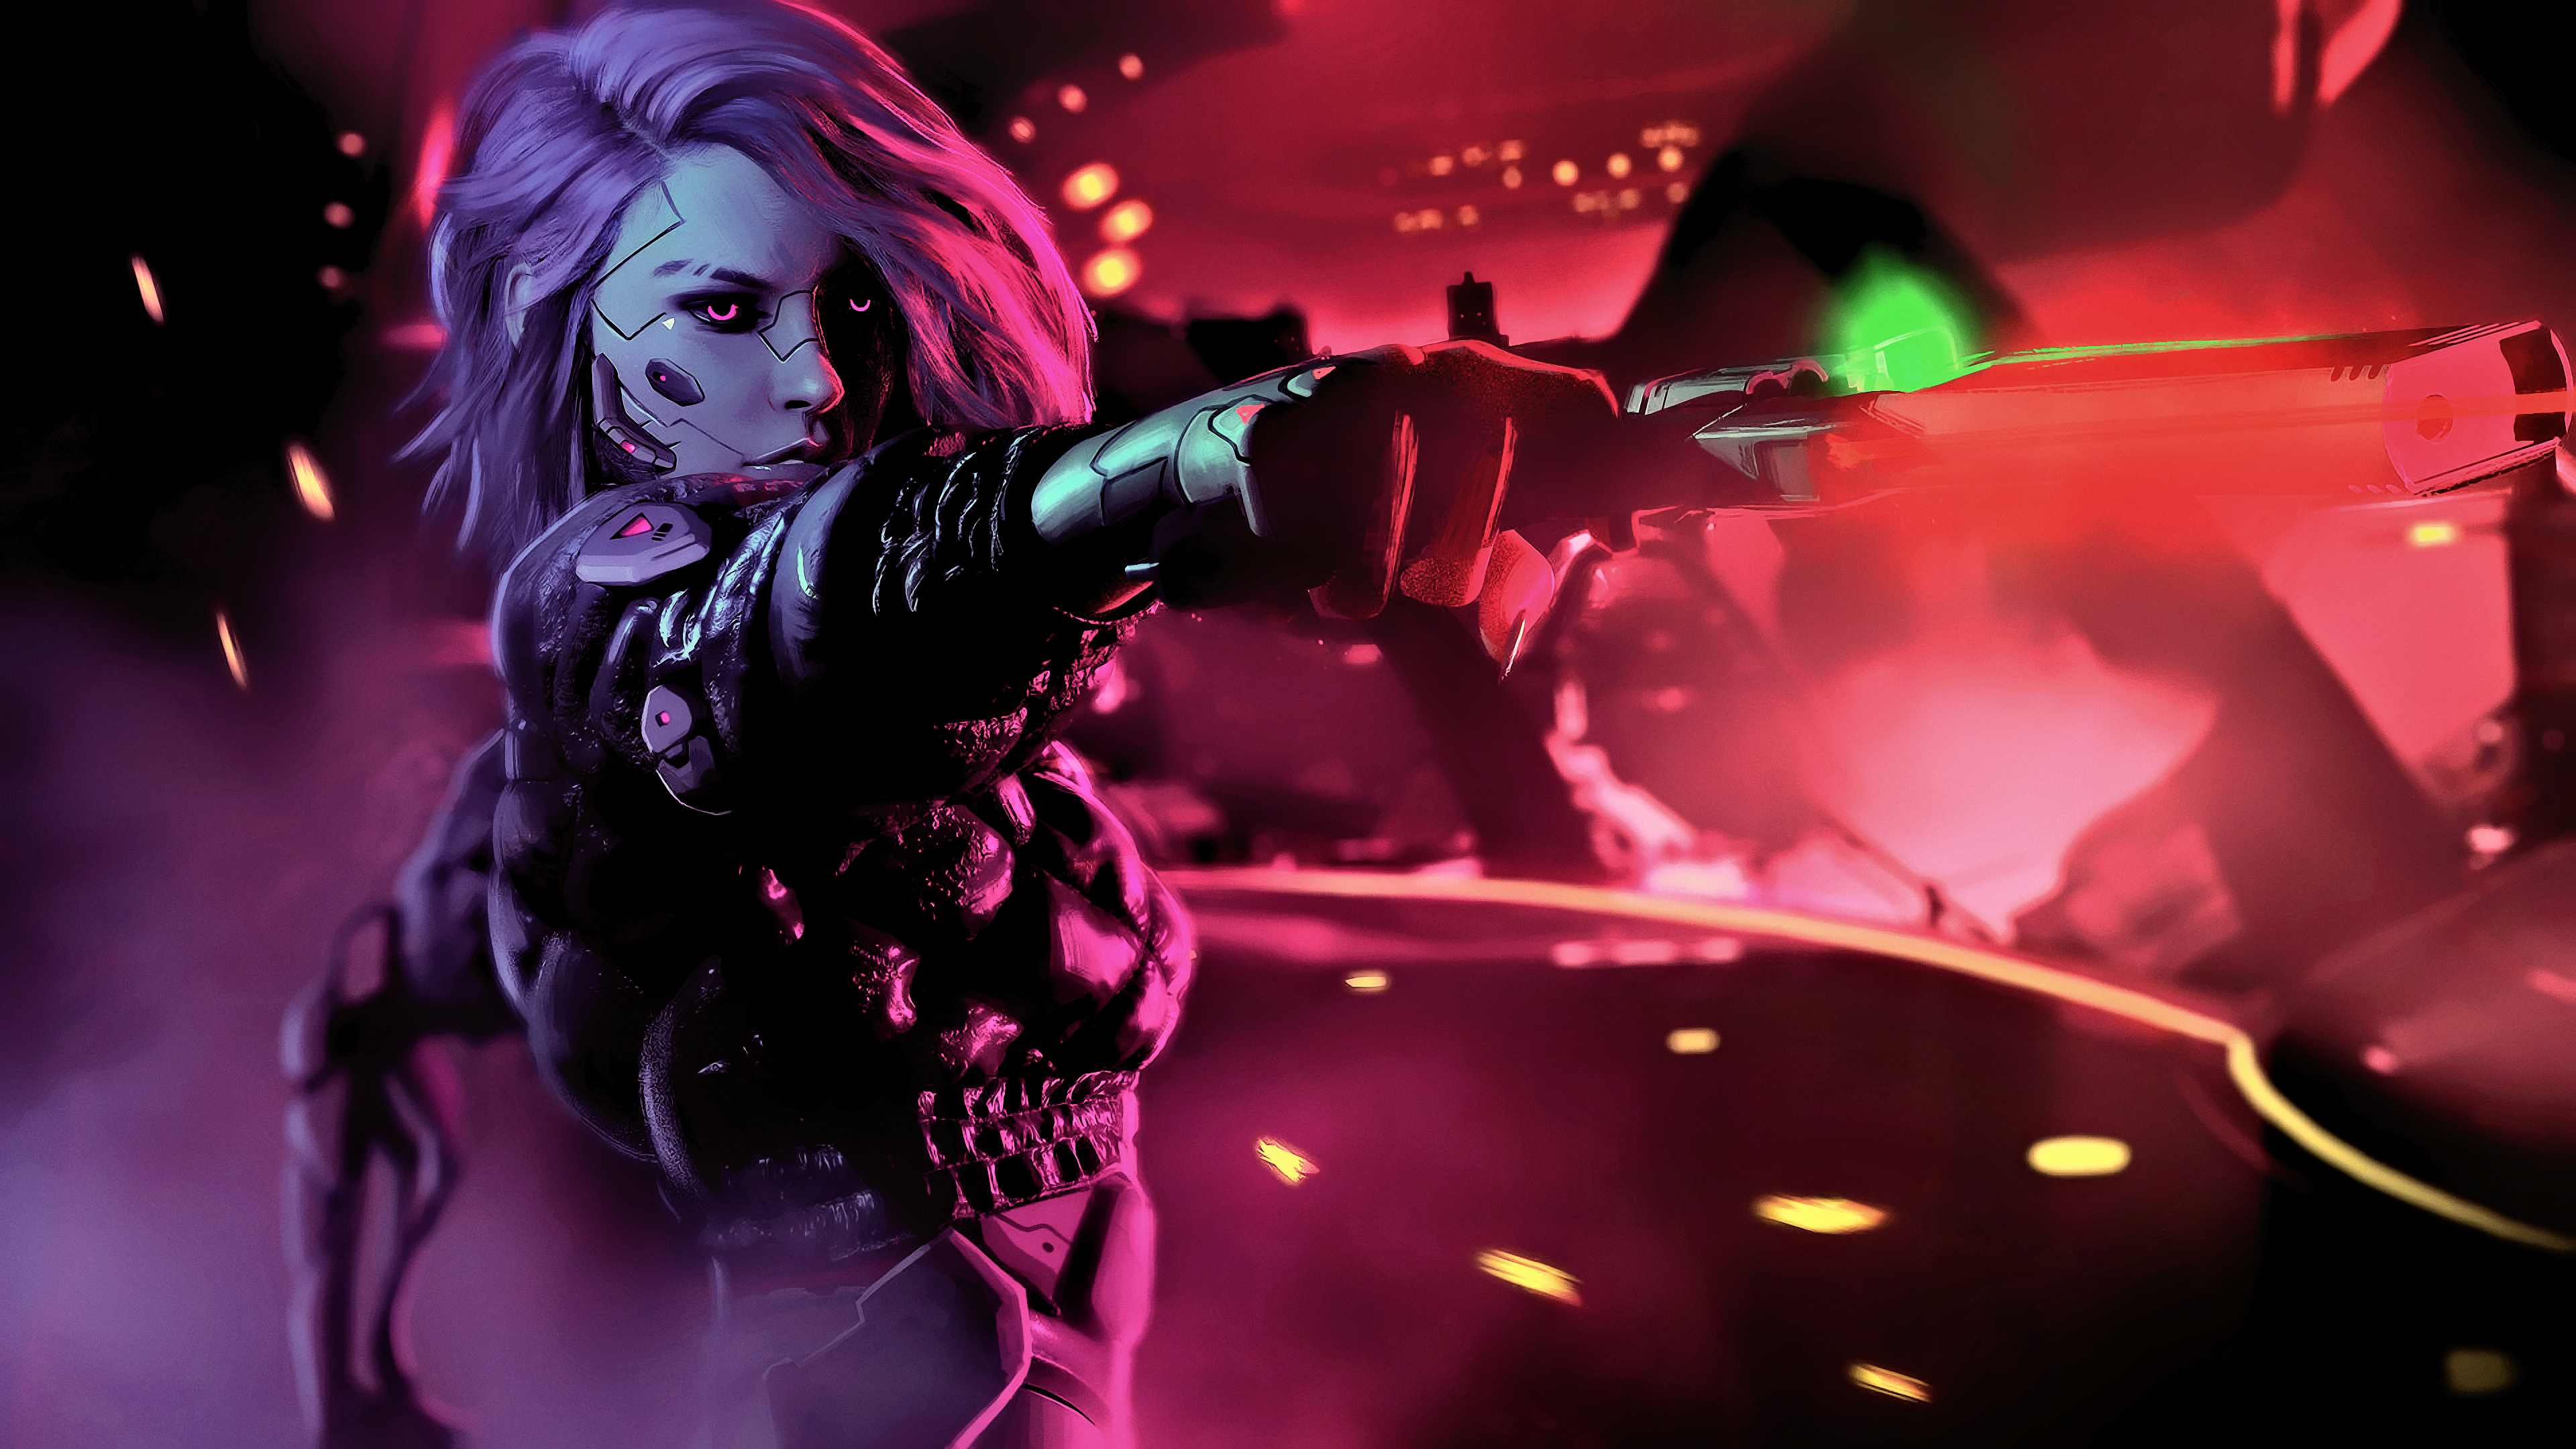 Cyberpunk Girl Wallpaper 4k 2501709 Hd Wallpaper Backgrounds Download